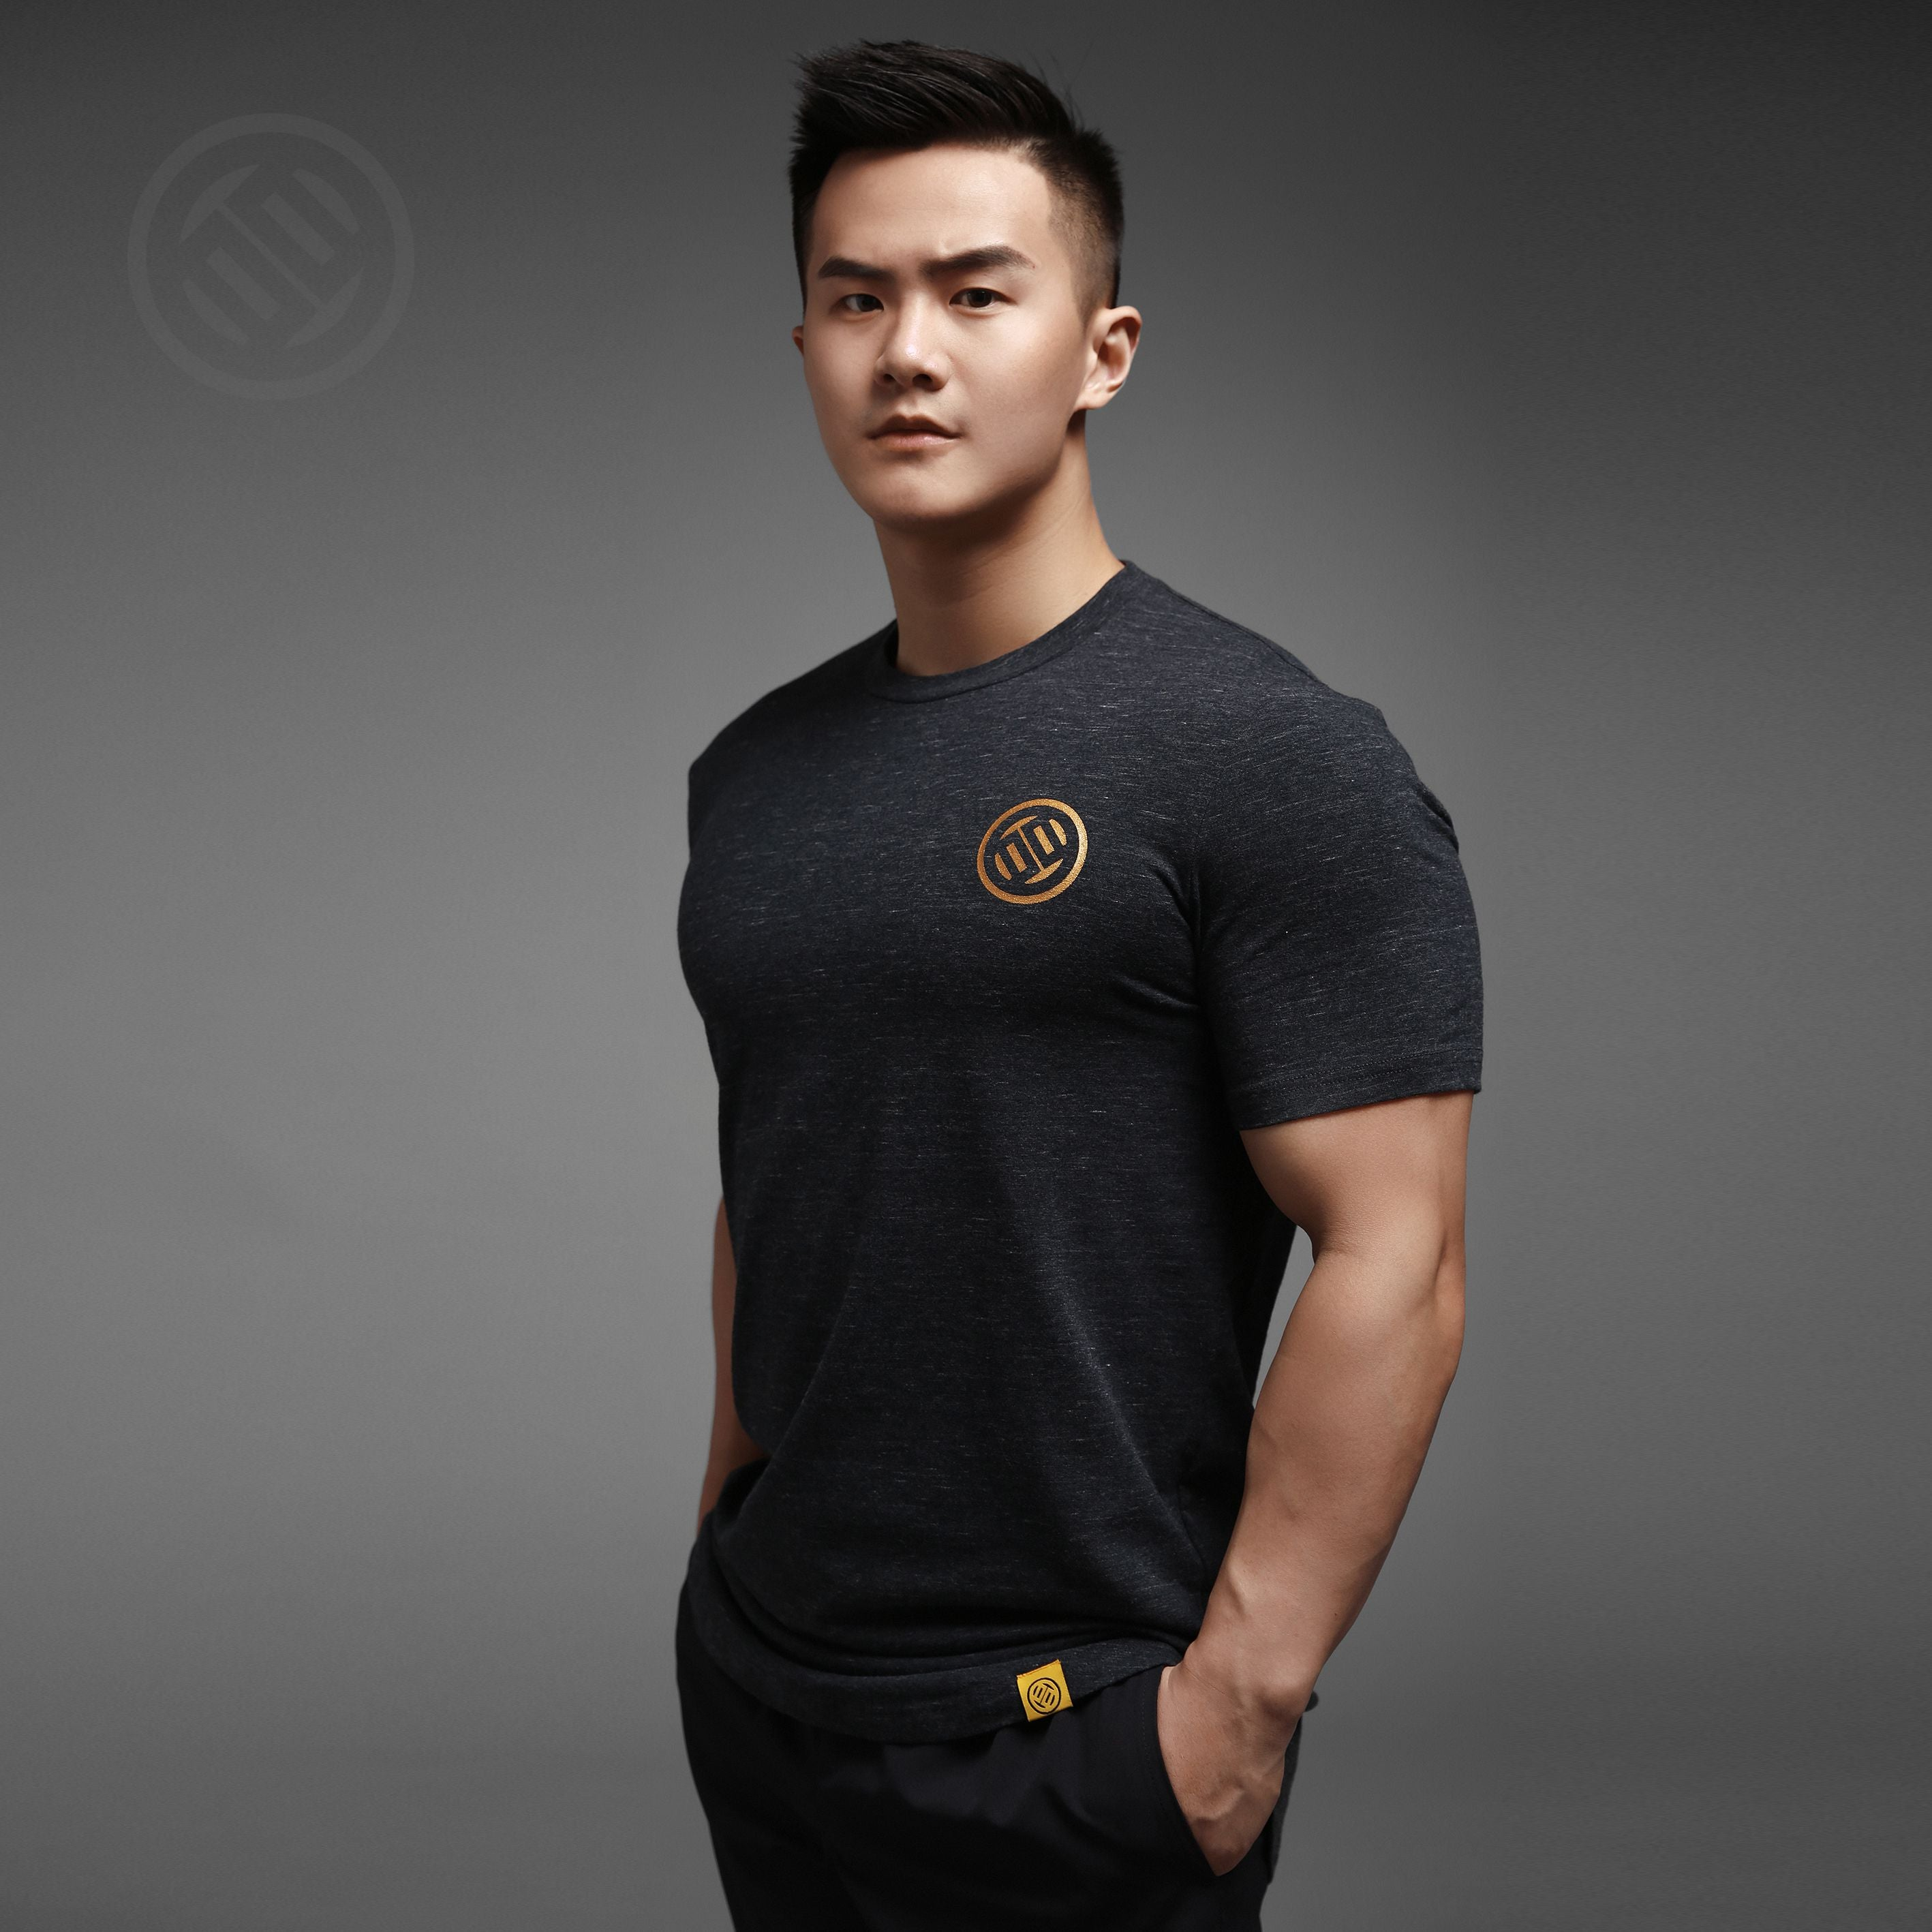 LUXIAOJUN Training T-Shirt Gold Logo